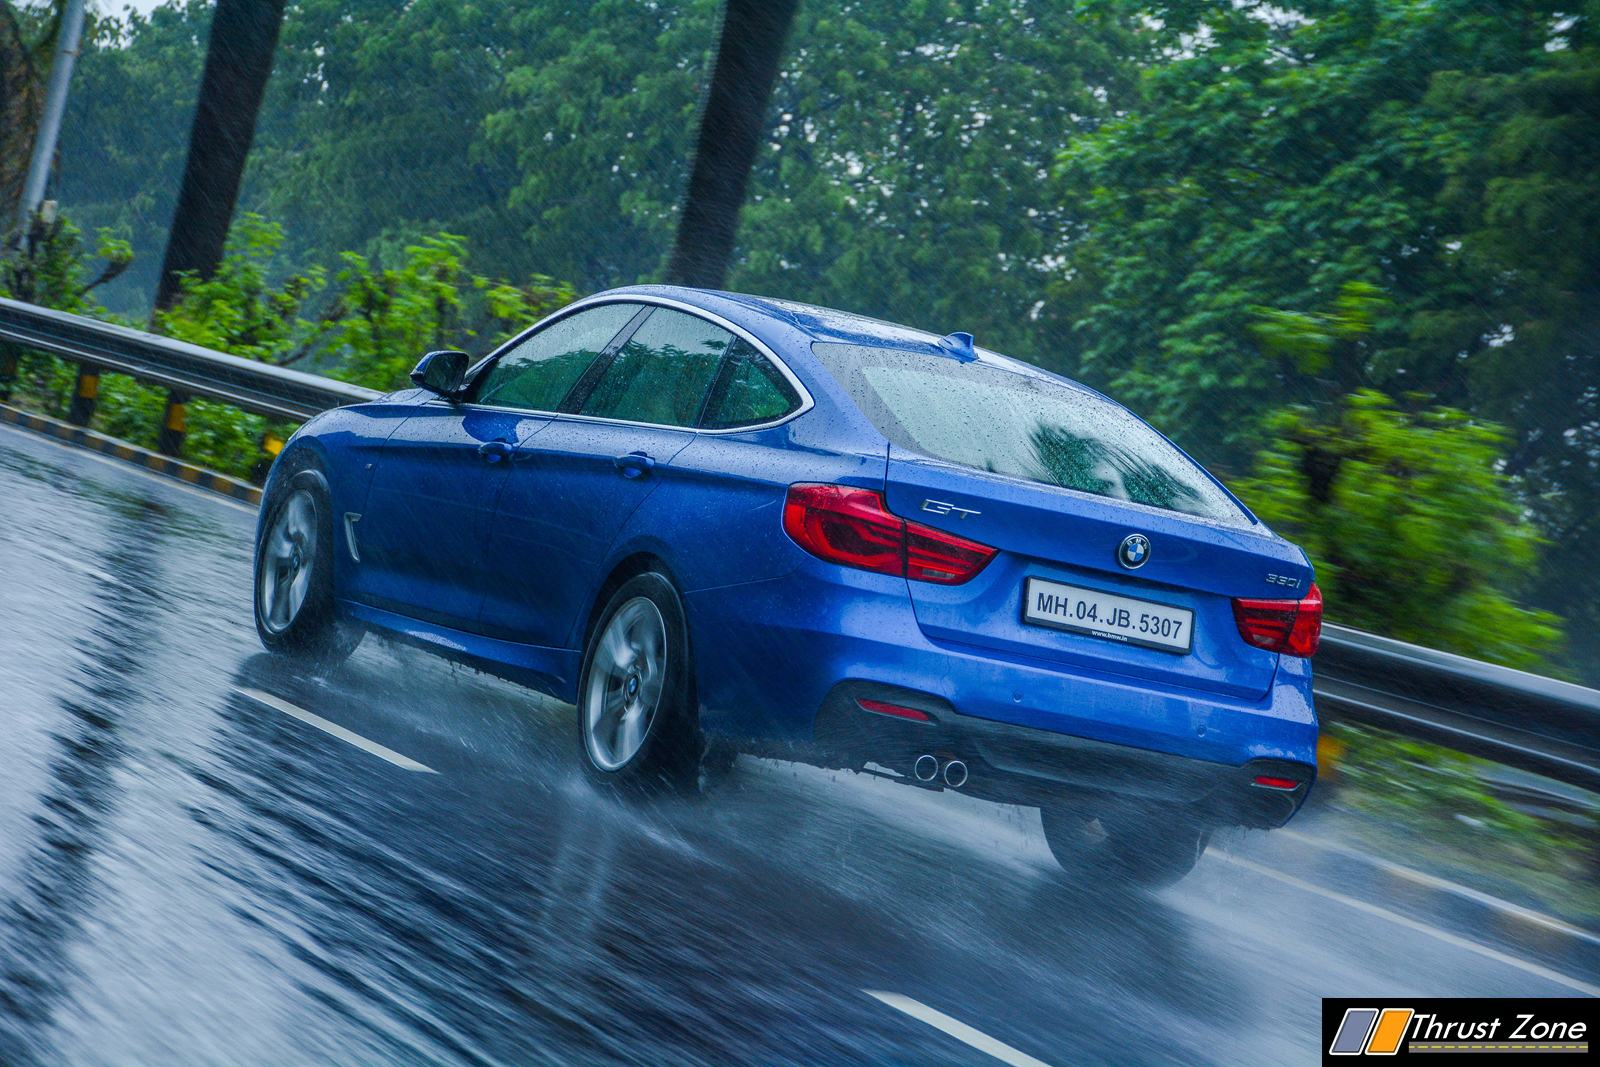 https://www.thrustzone.com/wp-content/uploads/2018/08/2018-BMW-3GT-Petrol-India-Review-4.jpg